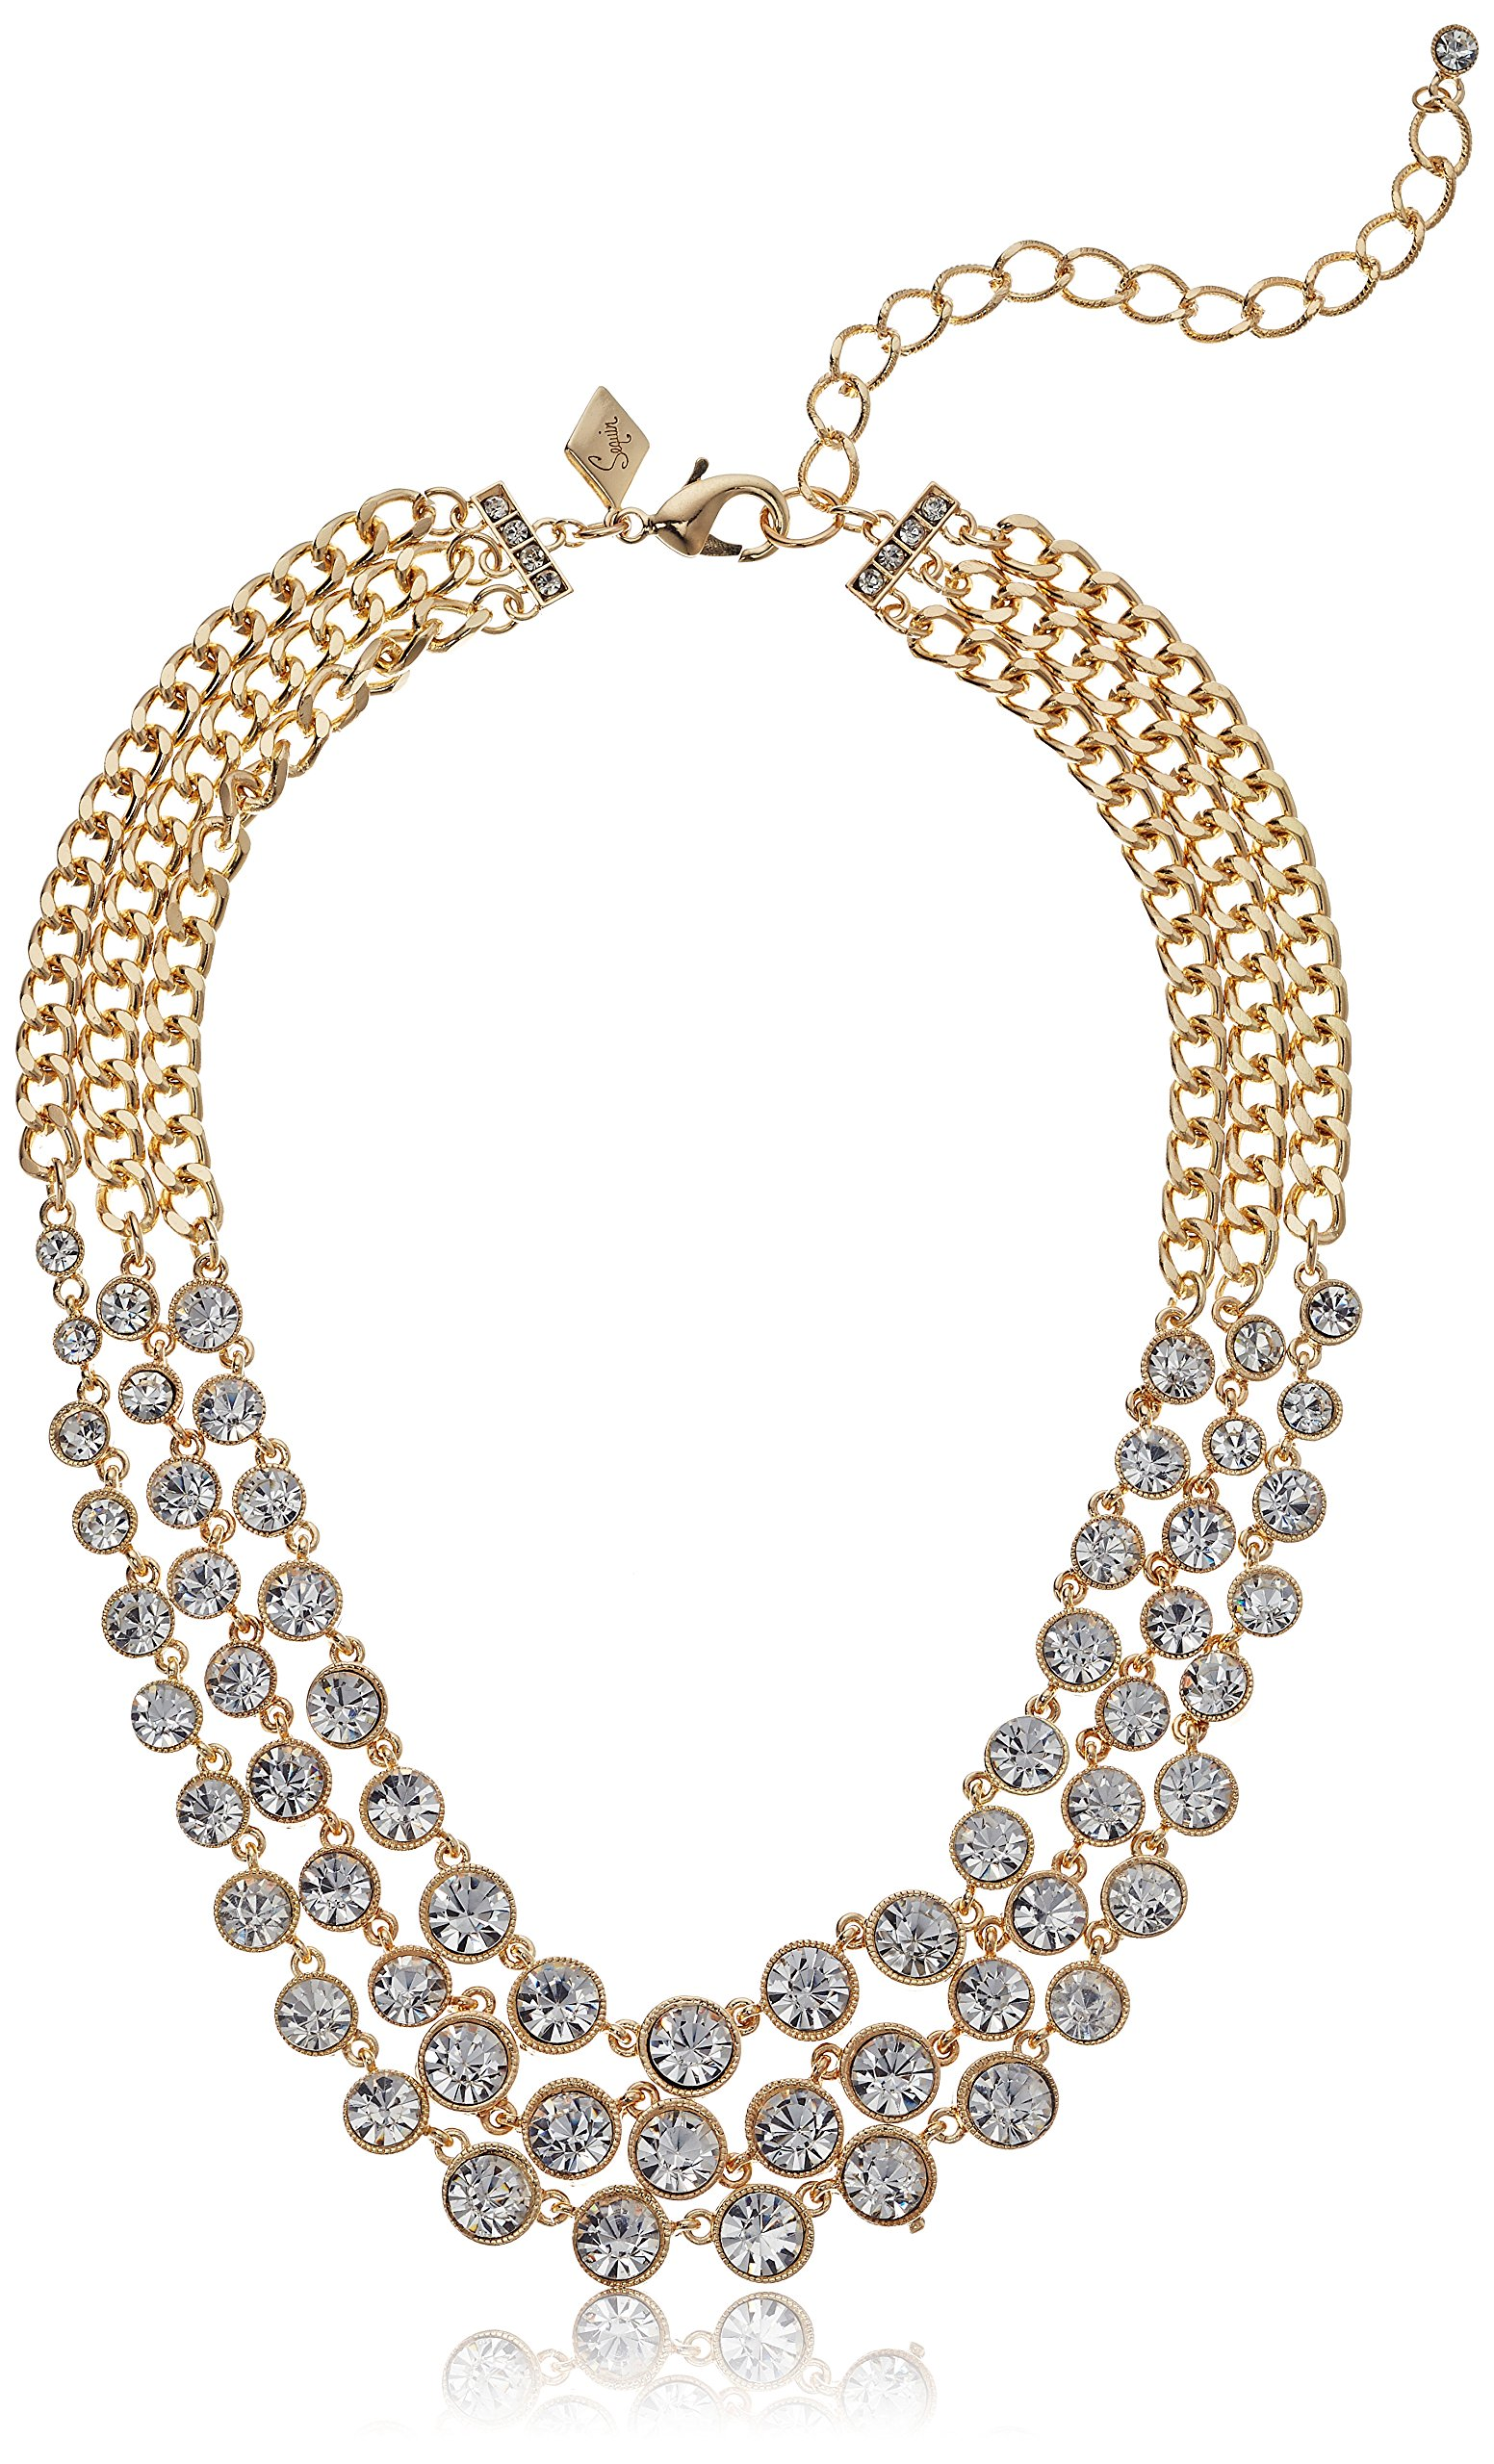 Sequin Womens Clear Crystal Strand Necklace, Clear Gold, Adjustable